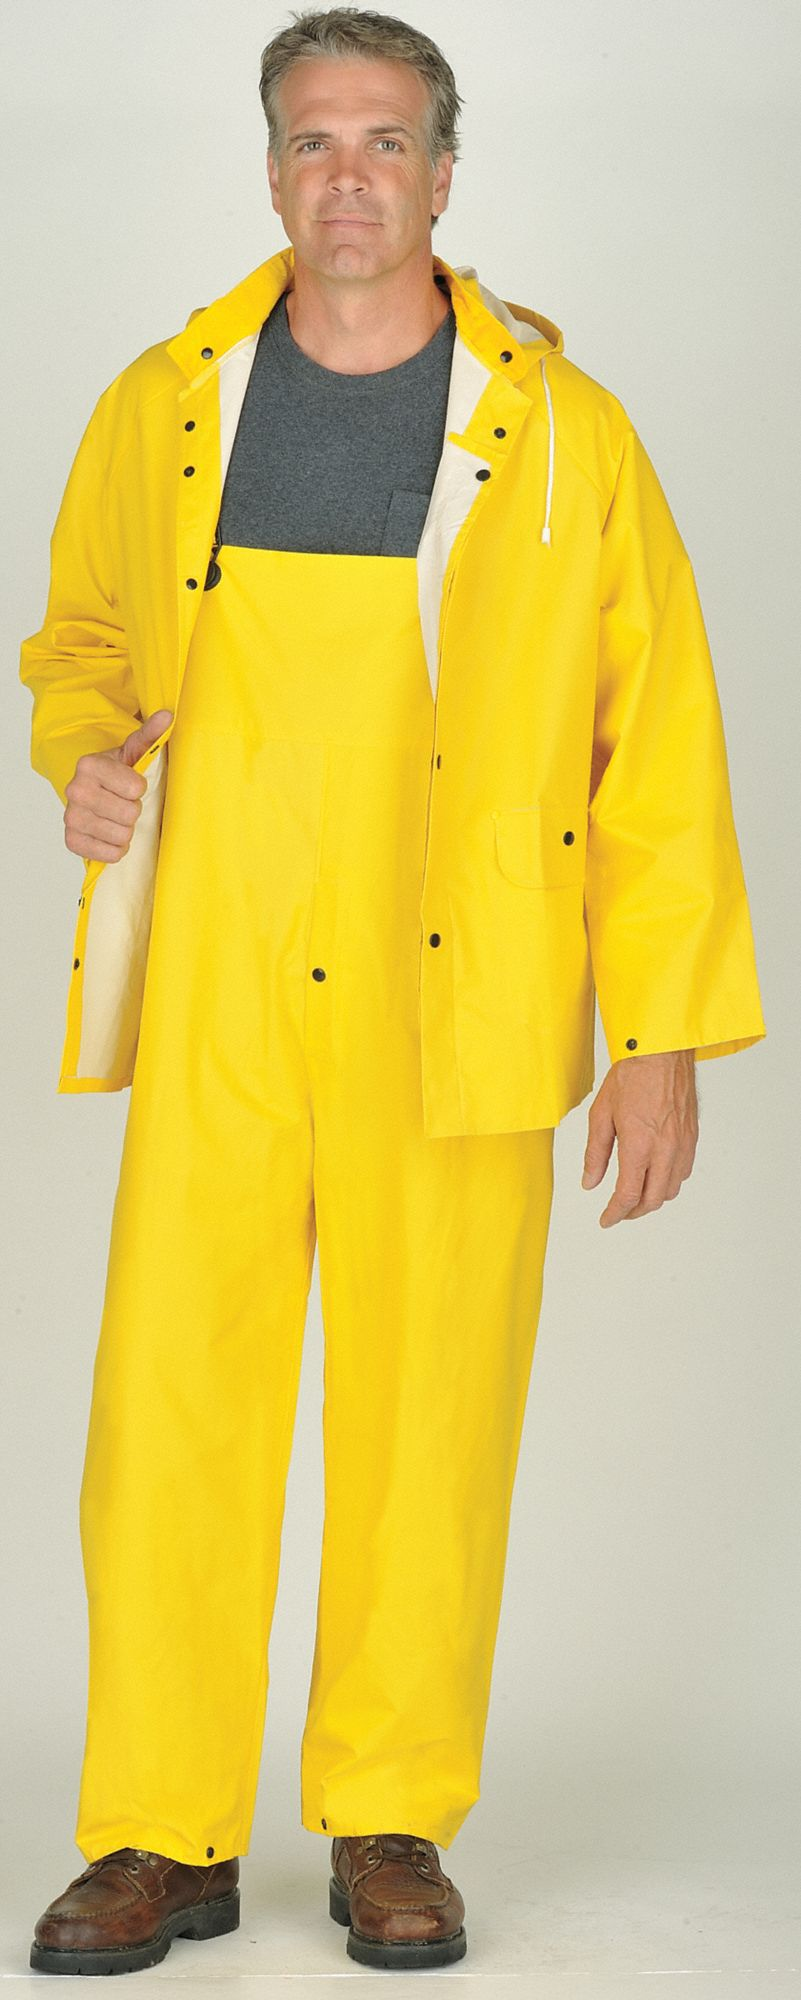 3-Piece Rain Suit with Jacket/Bib Overall, ANSI Class: Unrated, XL, Yellow, High Visibility: No